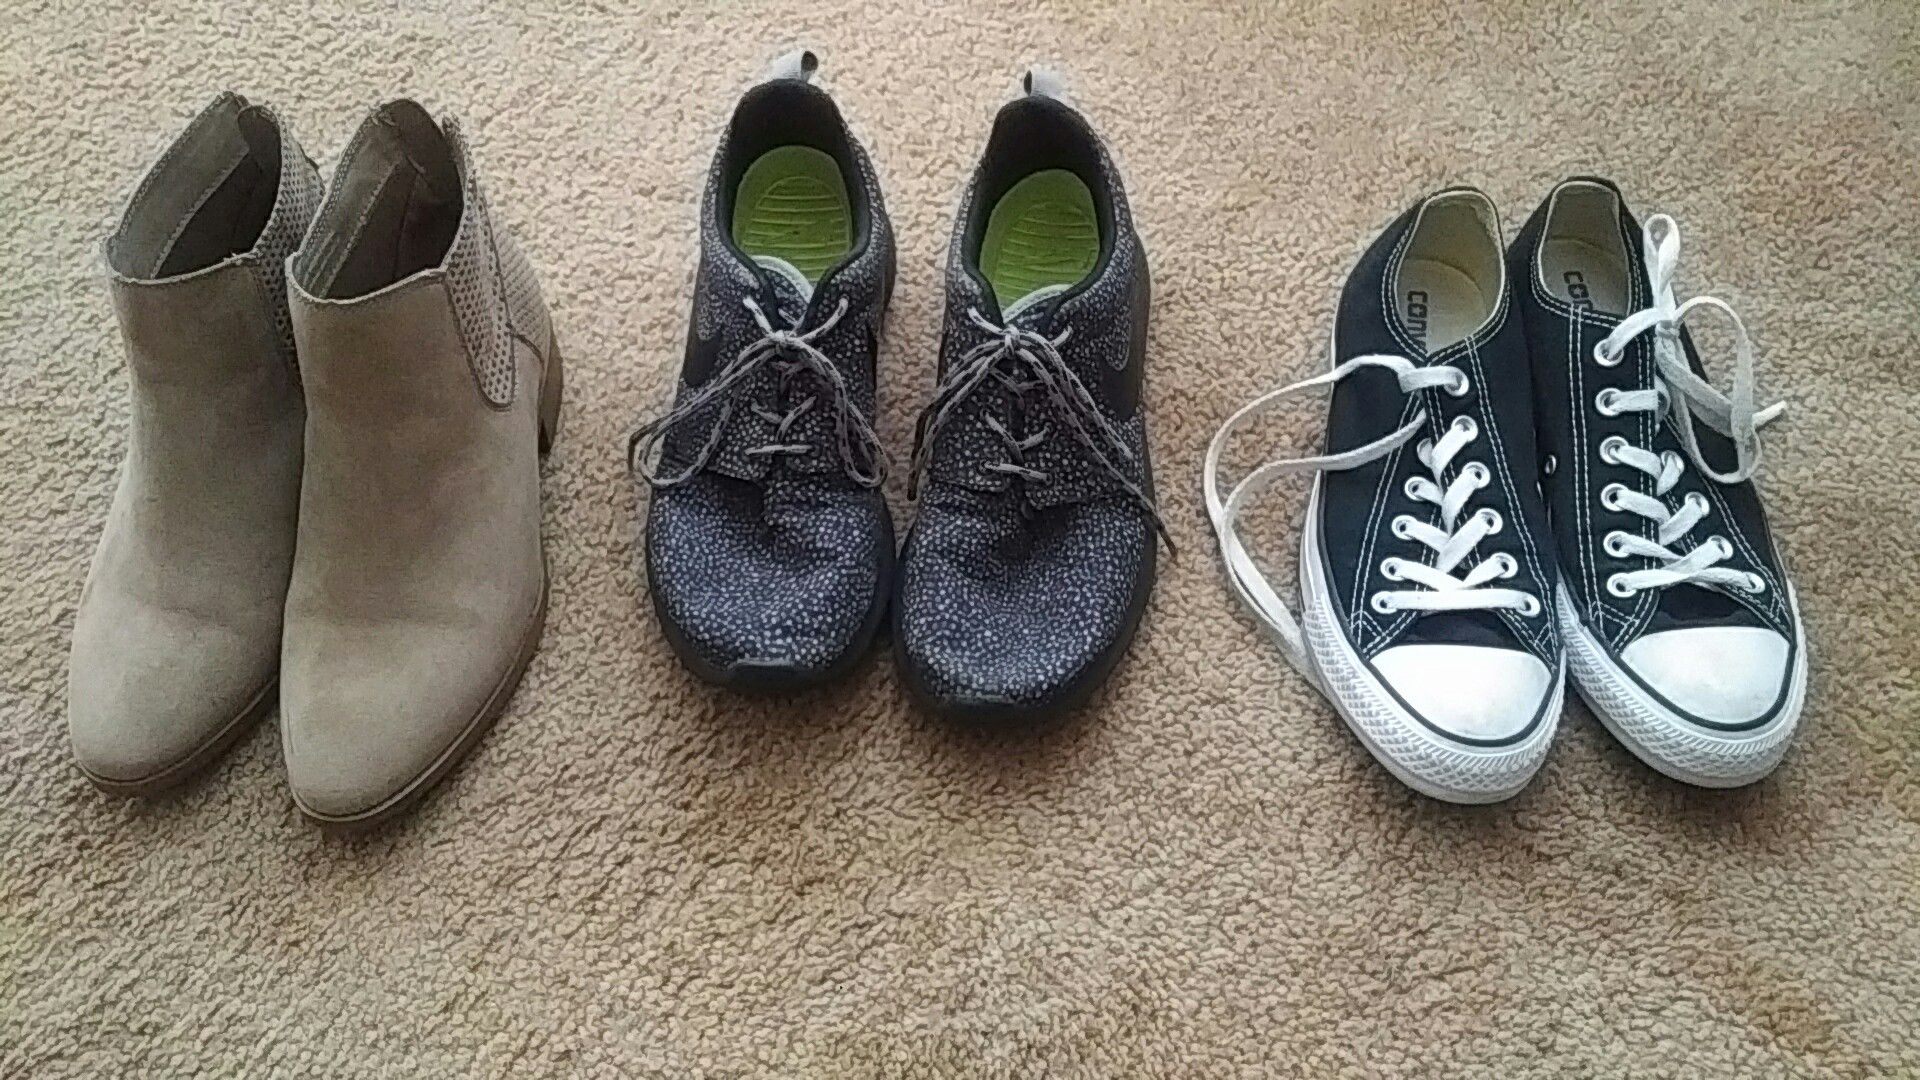 Shoes - beige ones is size 7, grey Nike Roshes is size 8, Converse is size 8, all in good condition and no tears